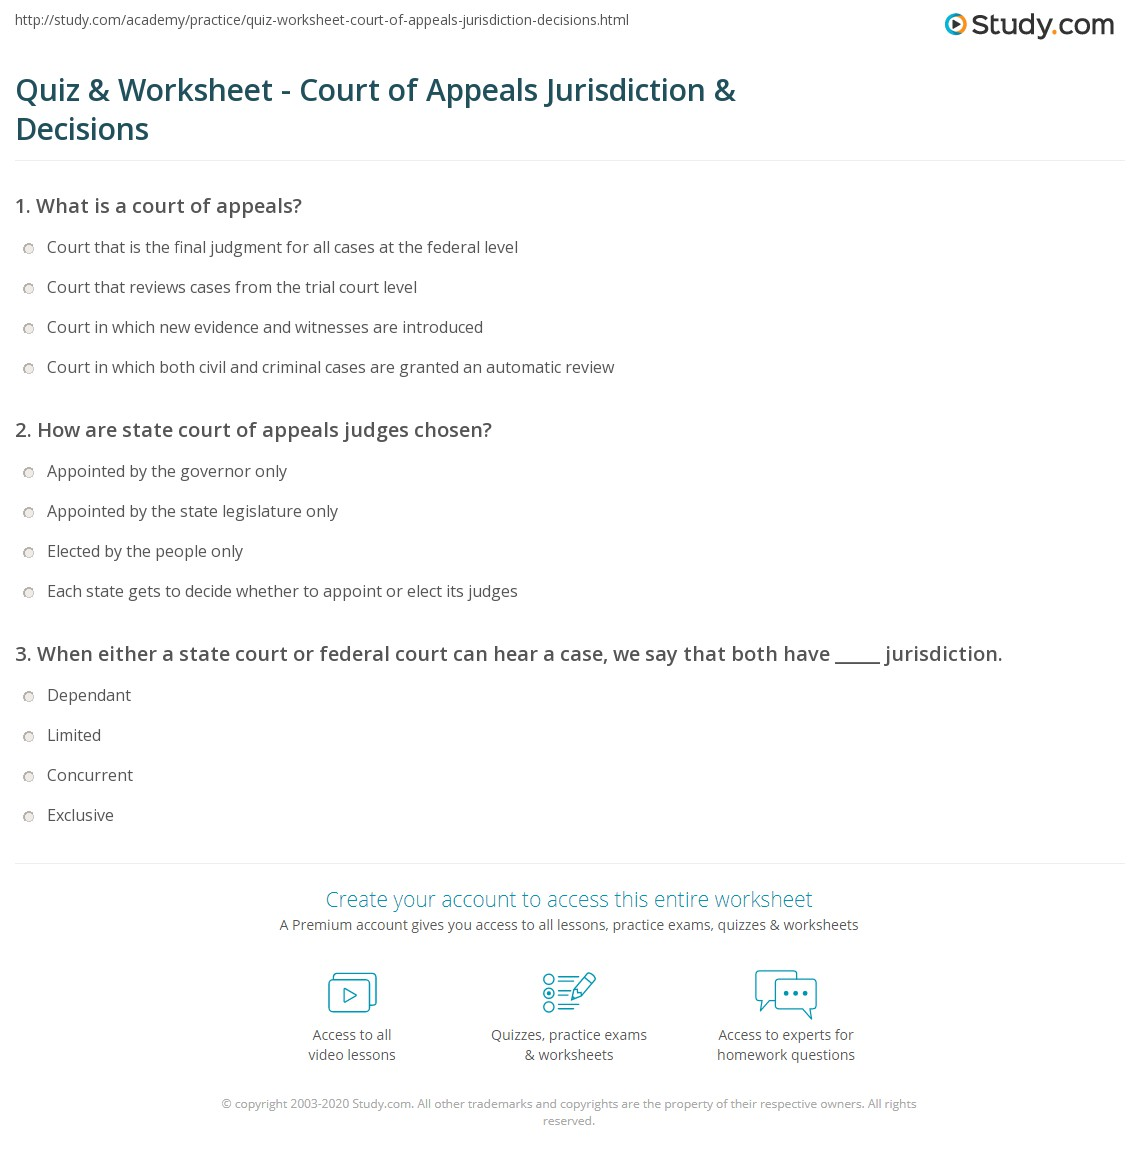 quiz & worksheet - court of appeals jurisdiction & decisions | study